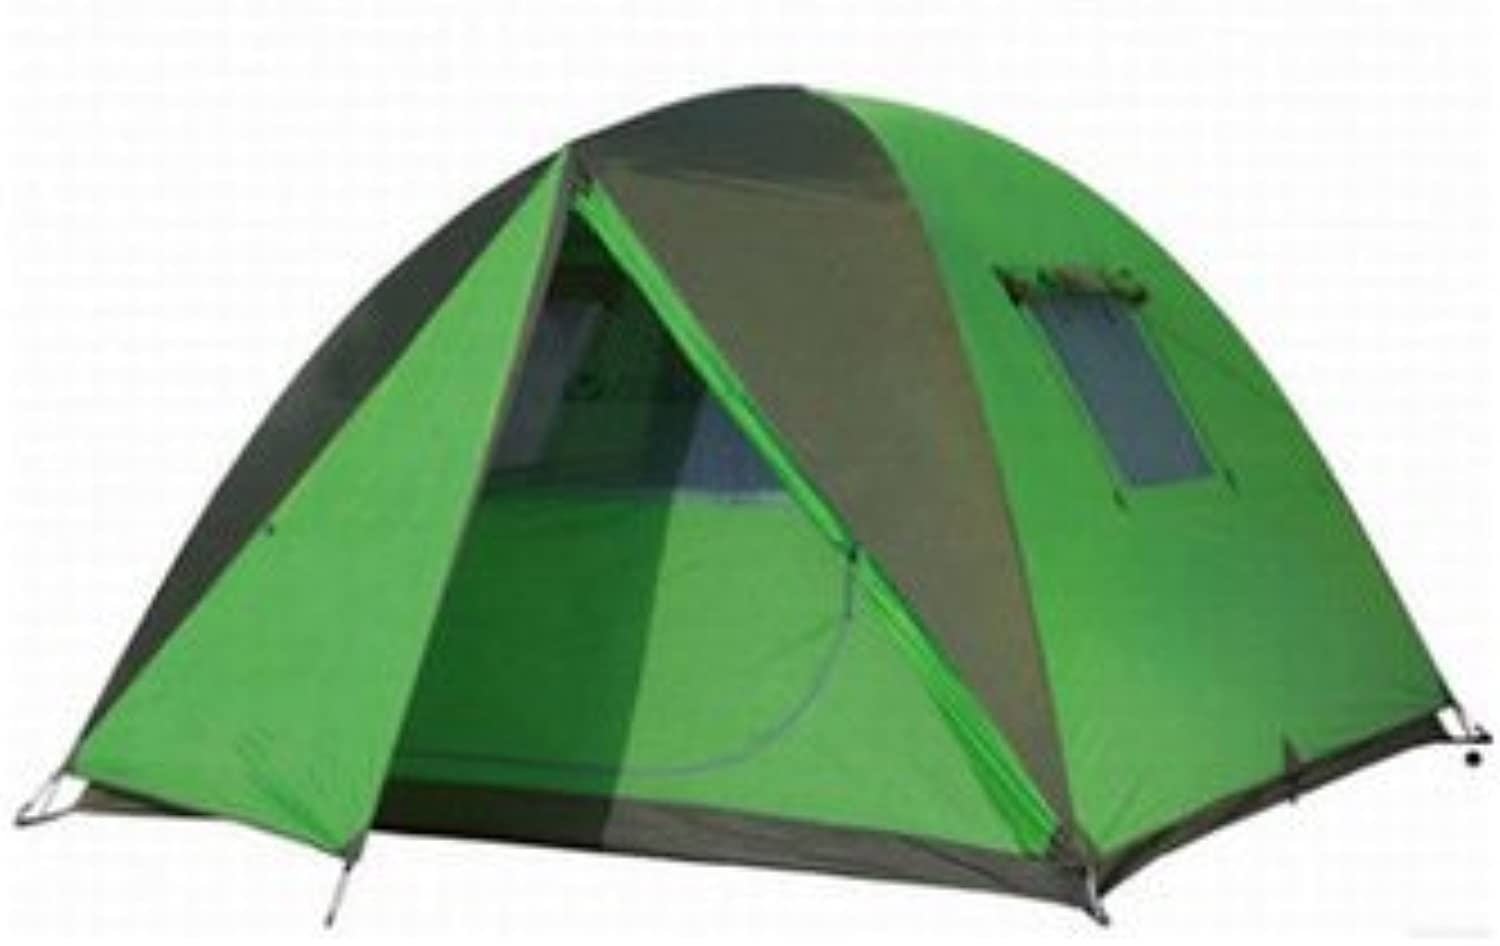 Tent Outdoor Camping Family Holiday 4 People Fishing Waterproof, Specifications 270  270  180Cm